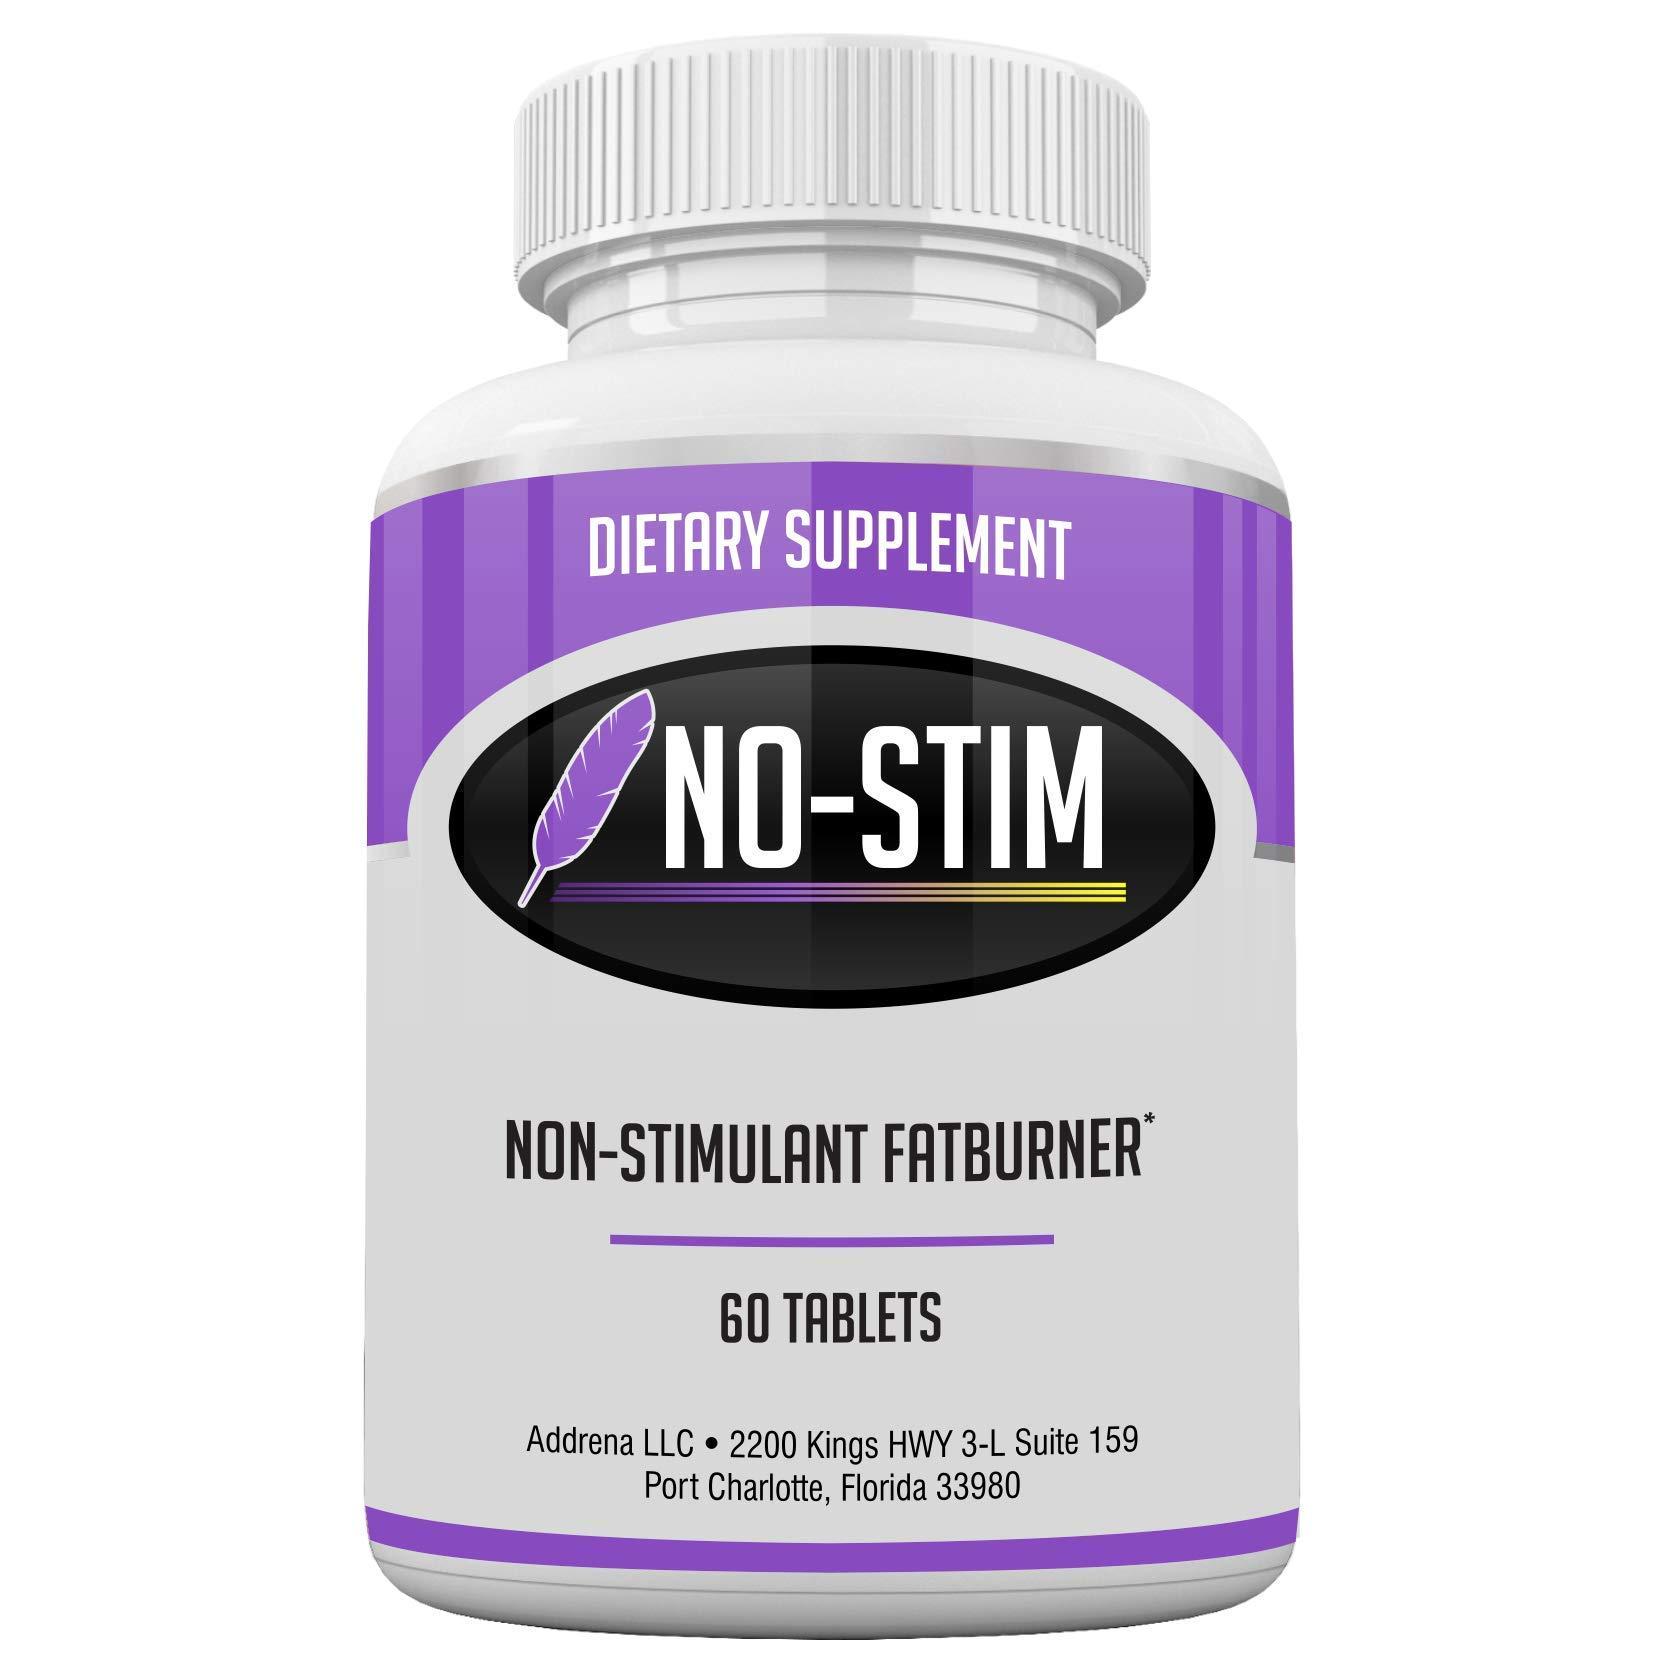 Non Stimulant Fat Burner Diet Pills That Work- No Stimulant Appetite Suppressant & Best Caffeine Free Weight Loss Supplement for Women & Men- Natural Thermogenic Fat Loss Pill - No-Stim 60 Tablets by Addrena